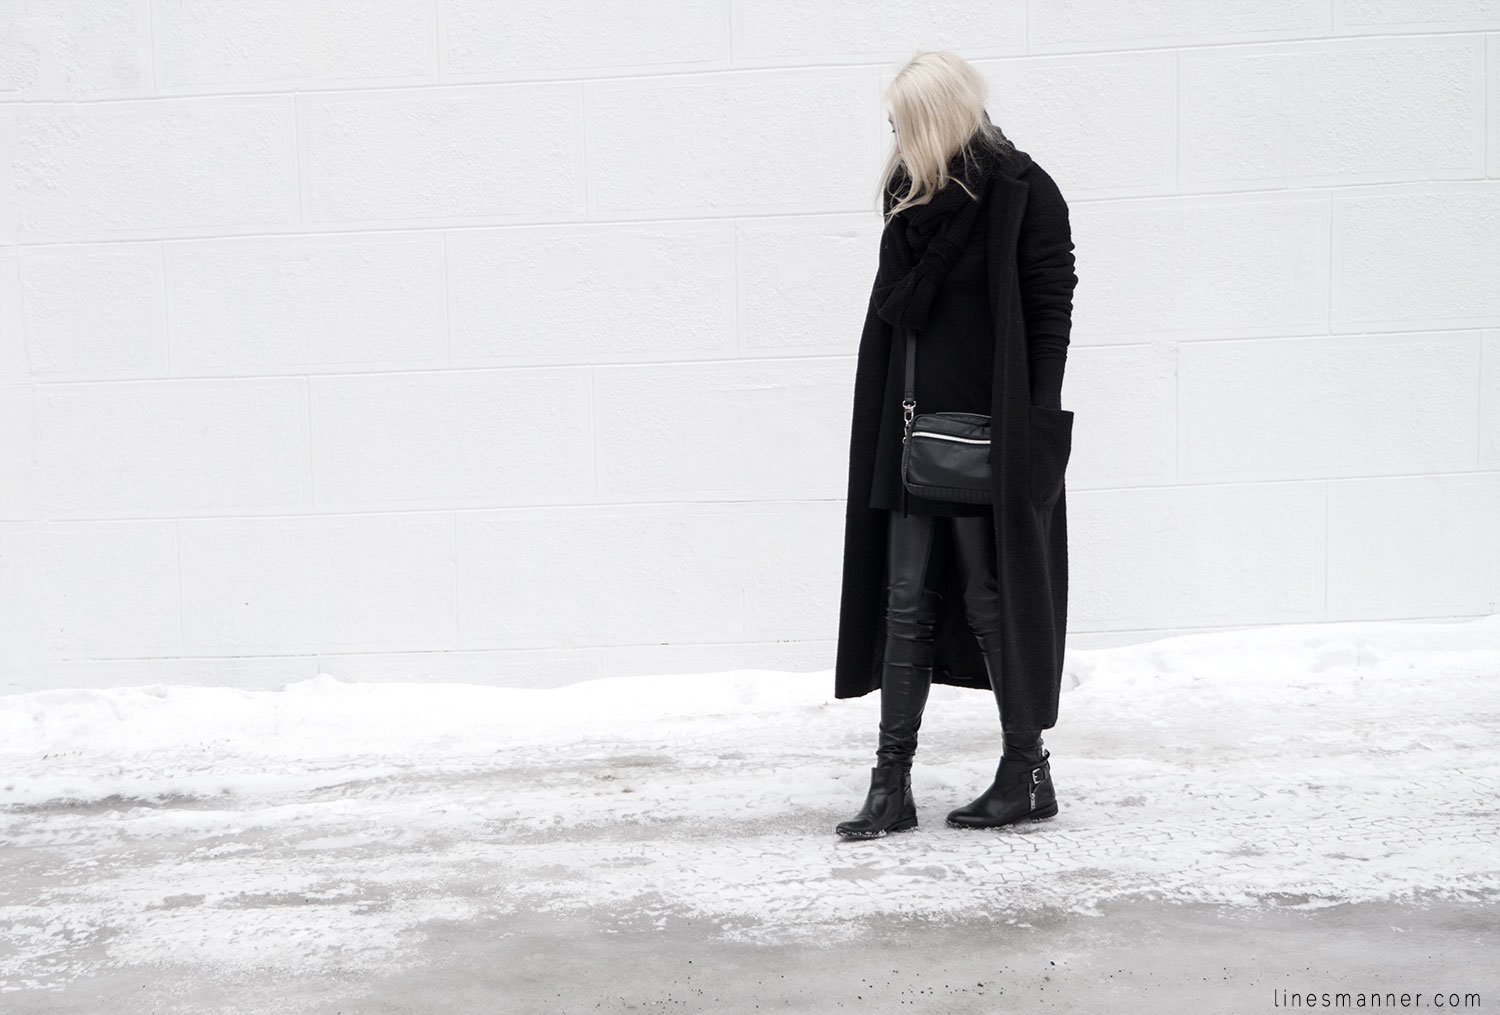 Lines-Manner-All_black_everything-monochrome-essentials-oversize-fit-textures-minimal-details-basics-staples-kayering-bundled-enveloped-silver-leather-9